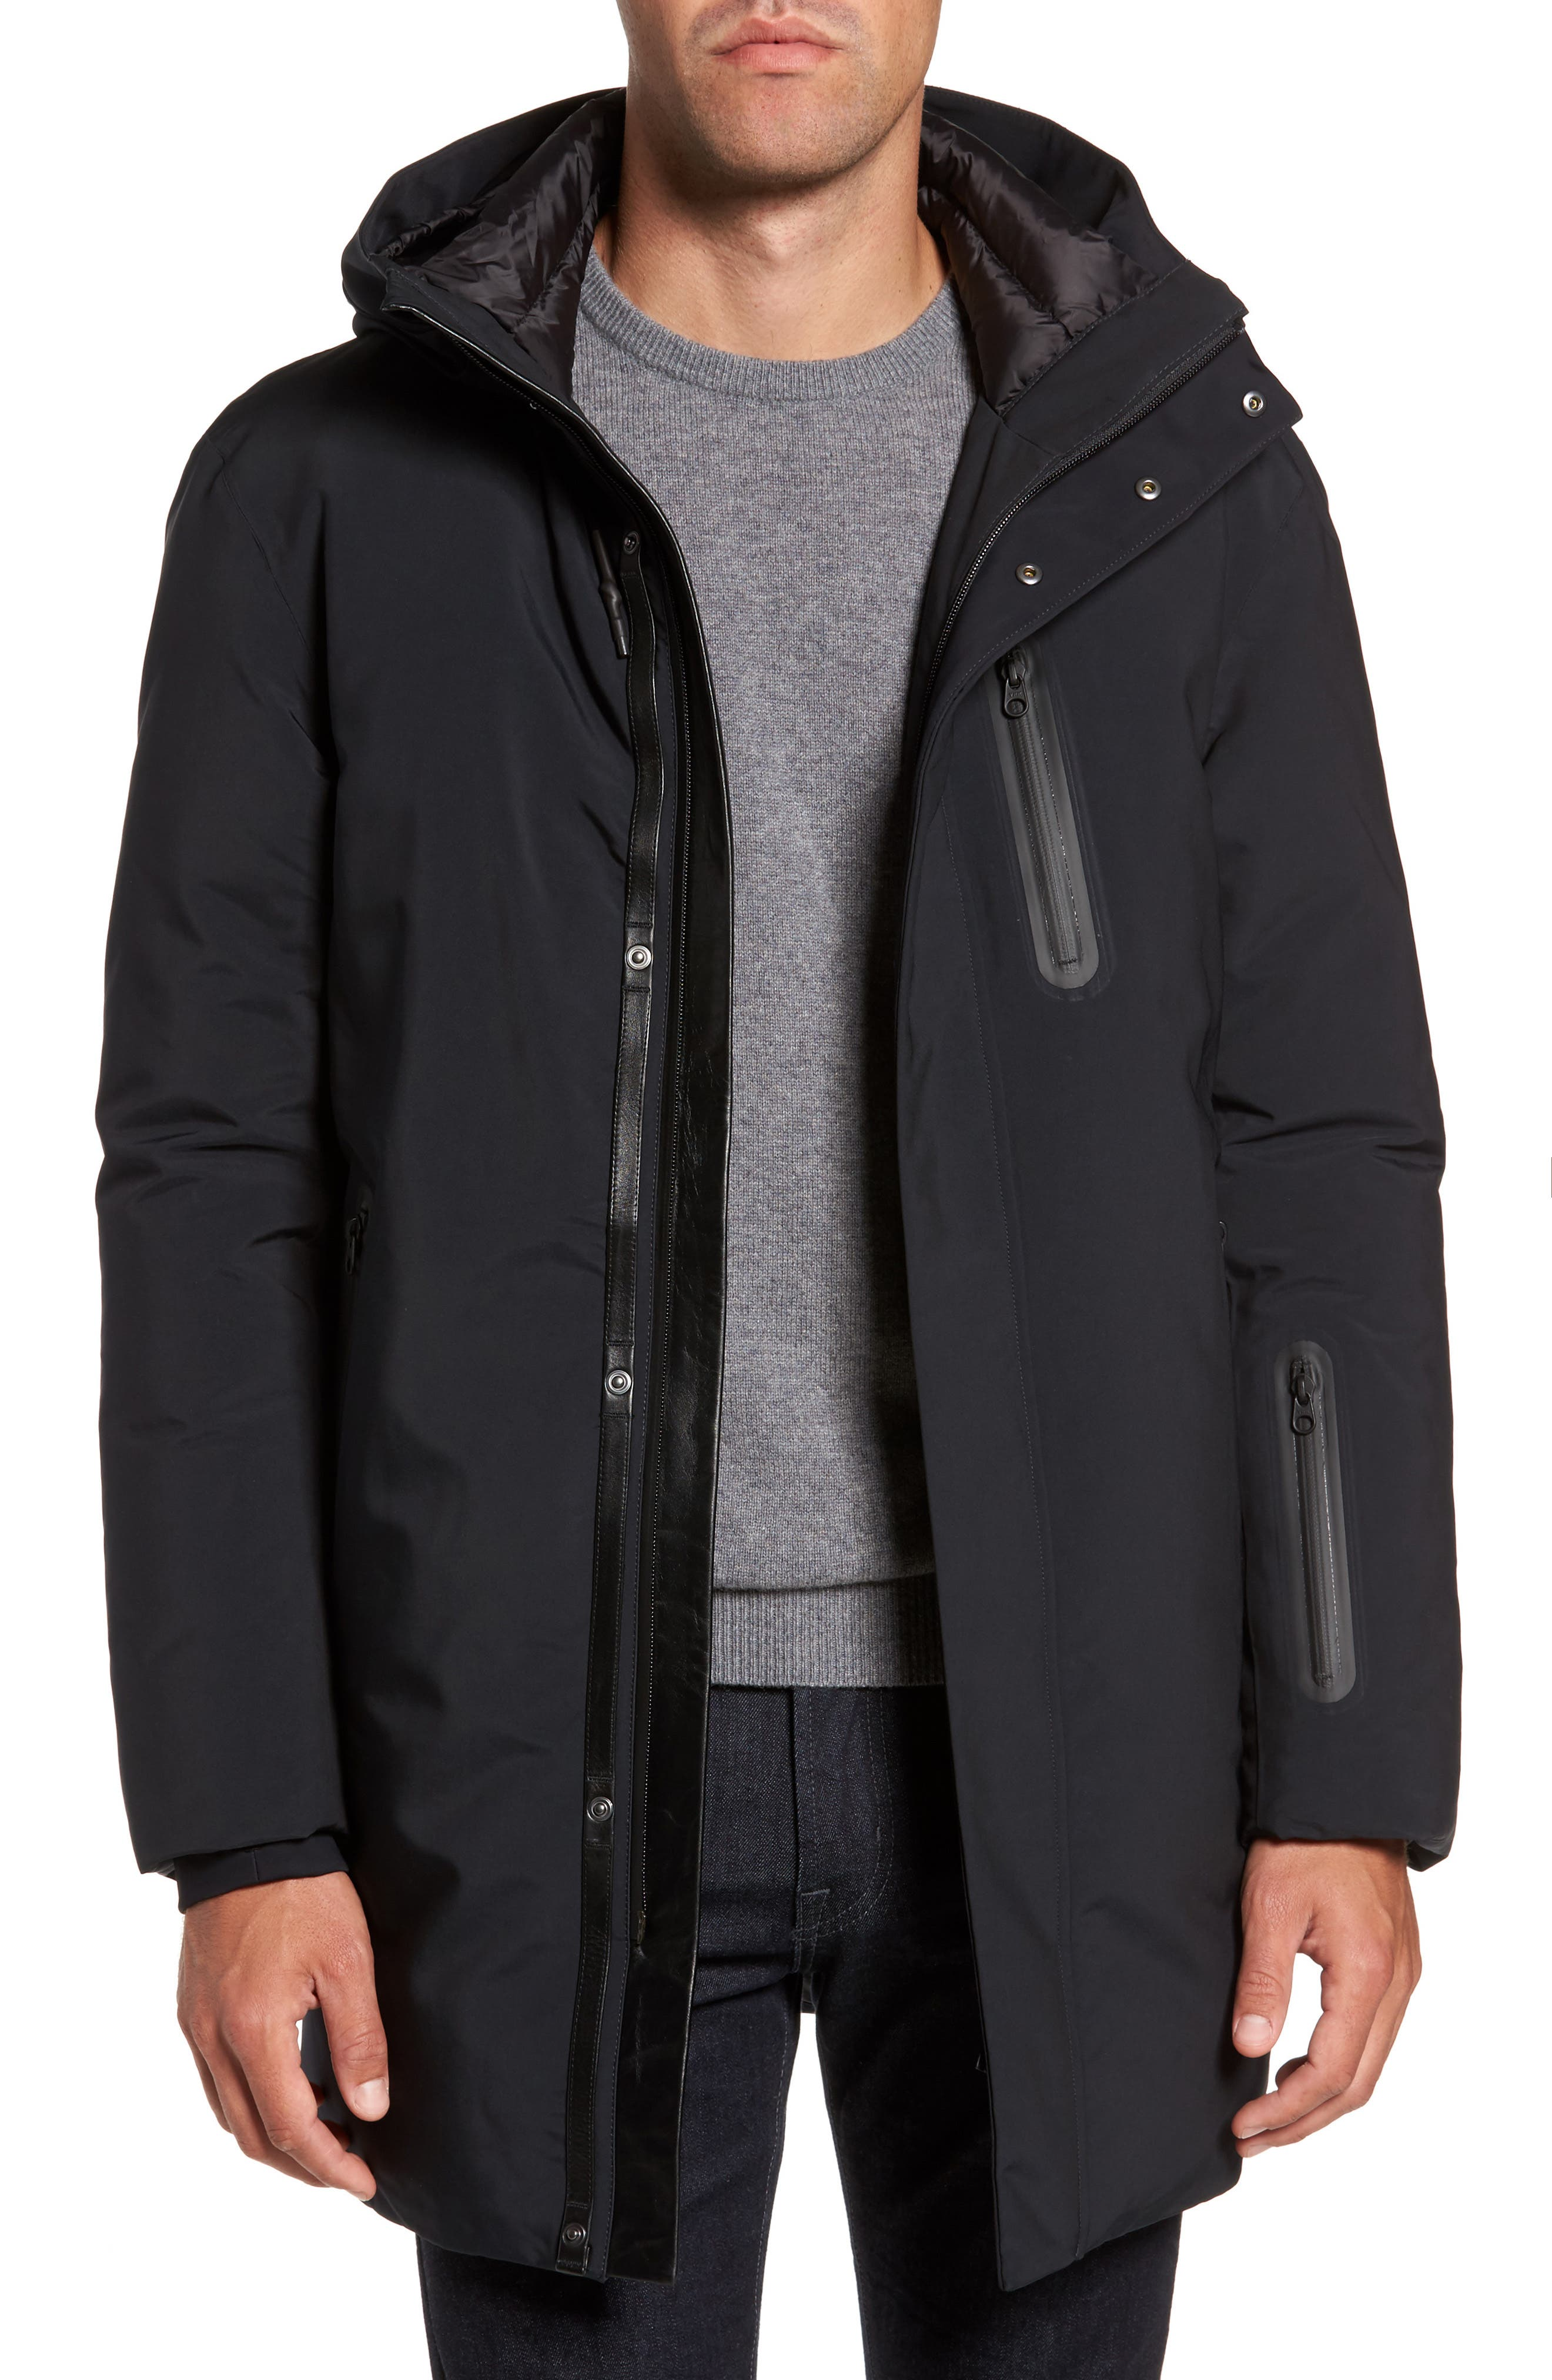 MACKAGE Chano Hooded Down Jacket, Main, color, 001